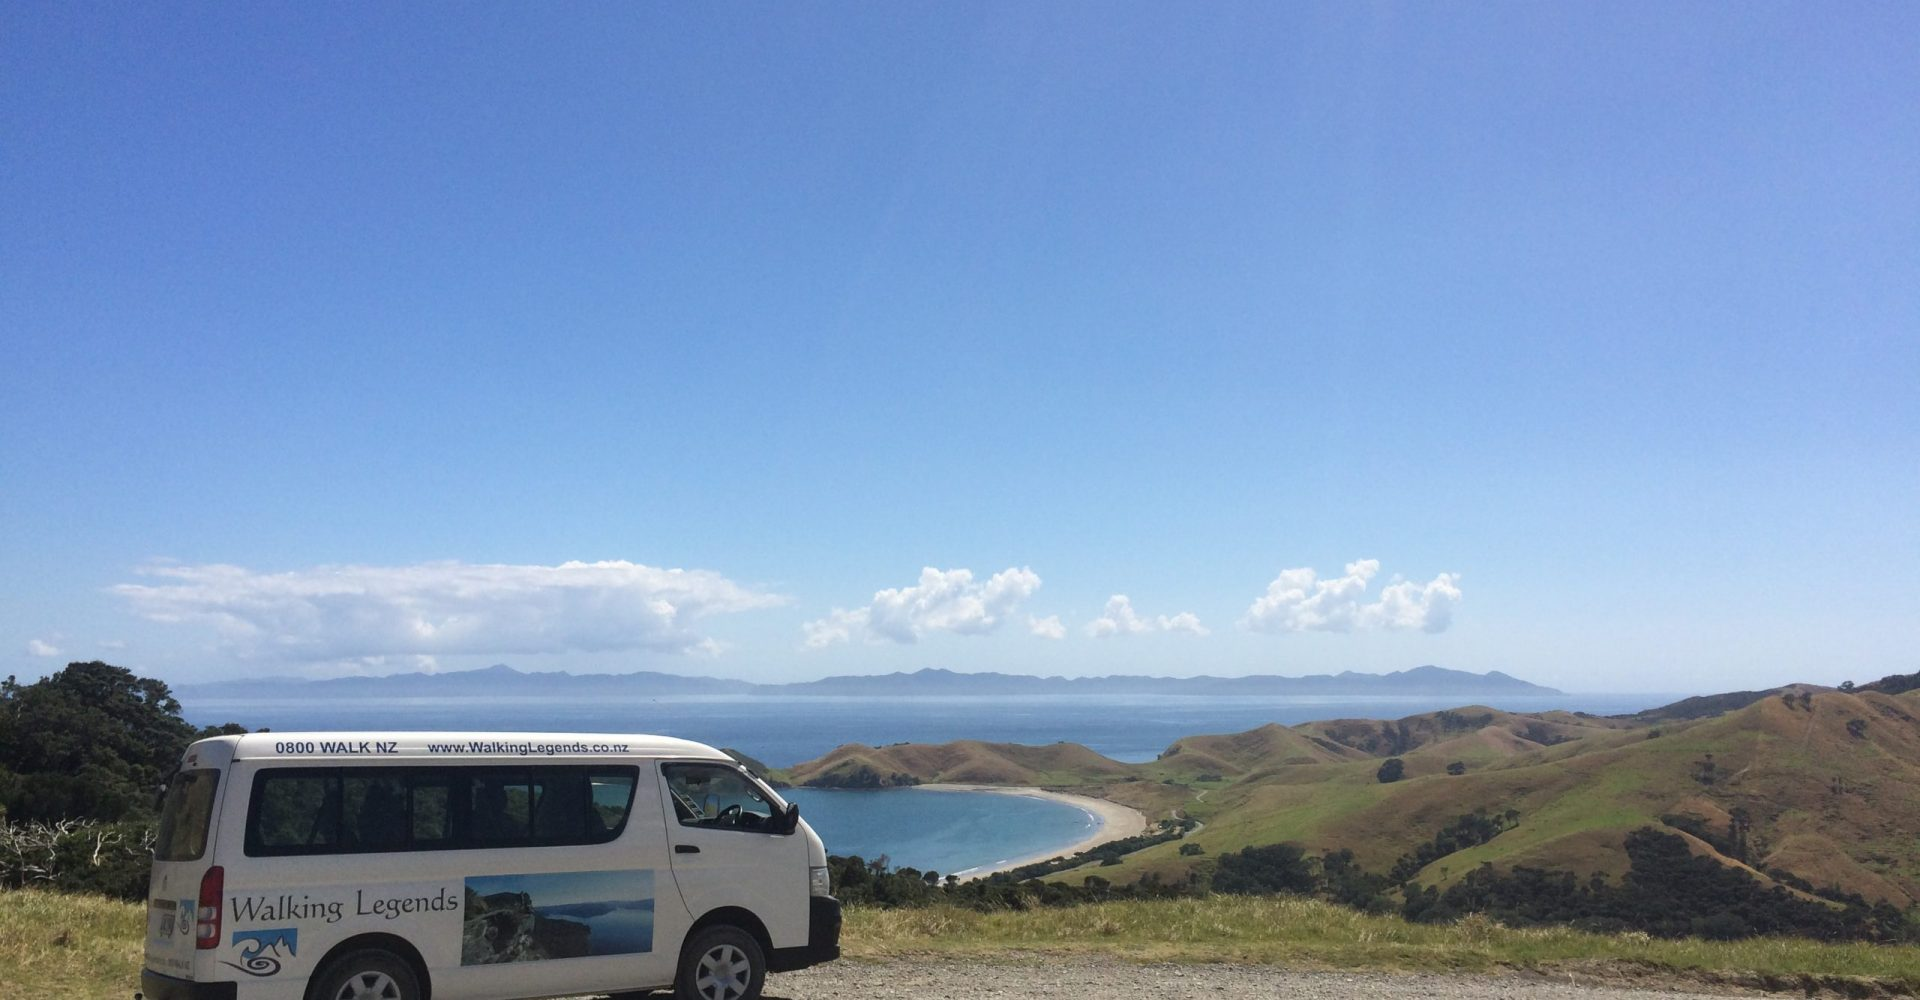 Walking Legends van on the Coromandel Peninsula